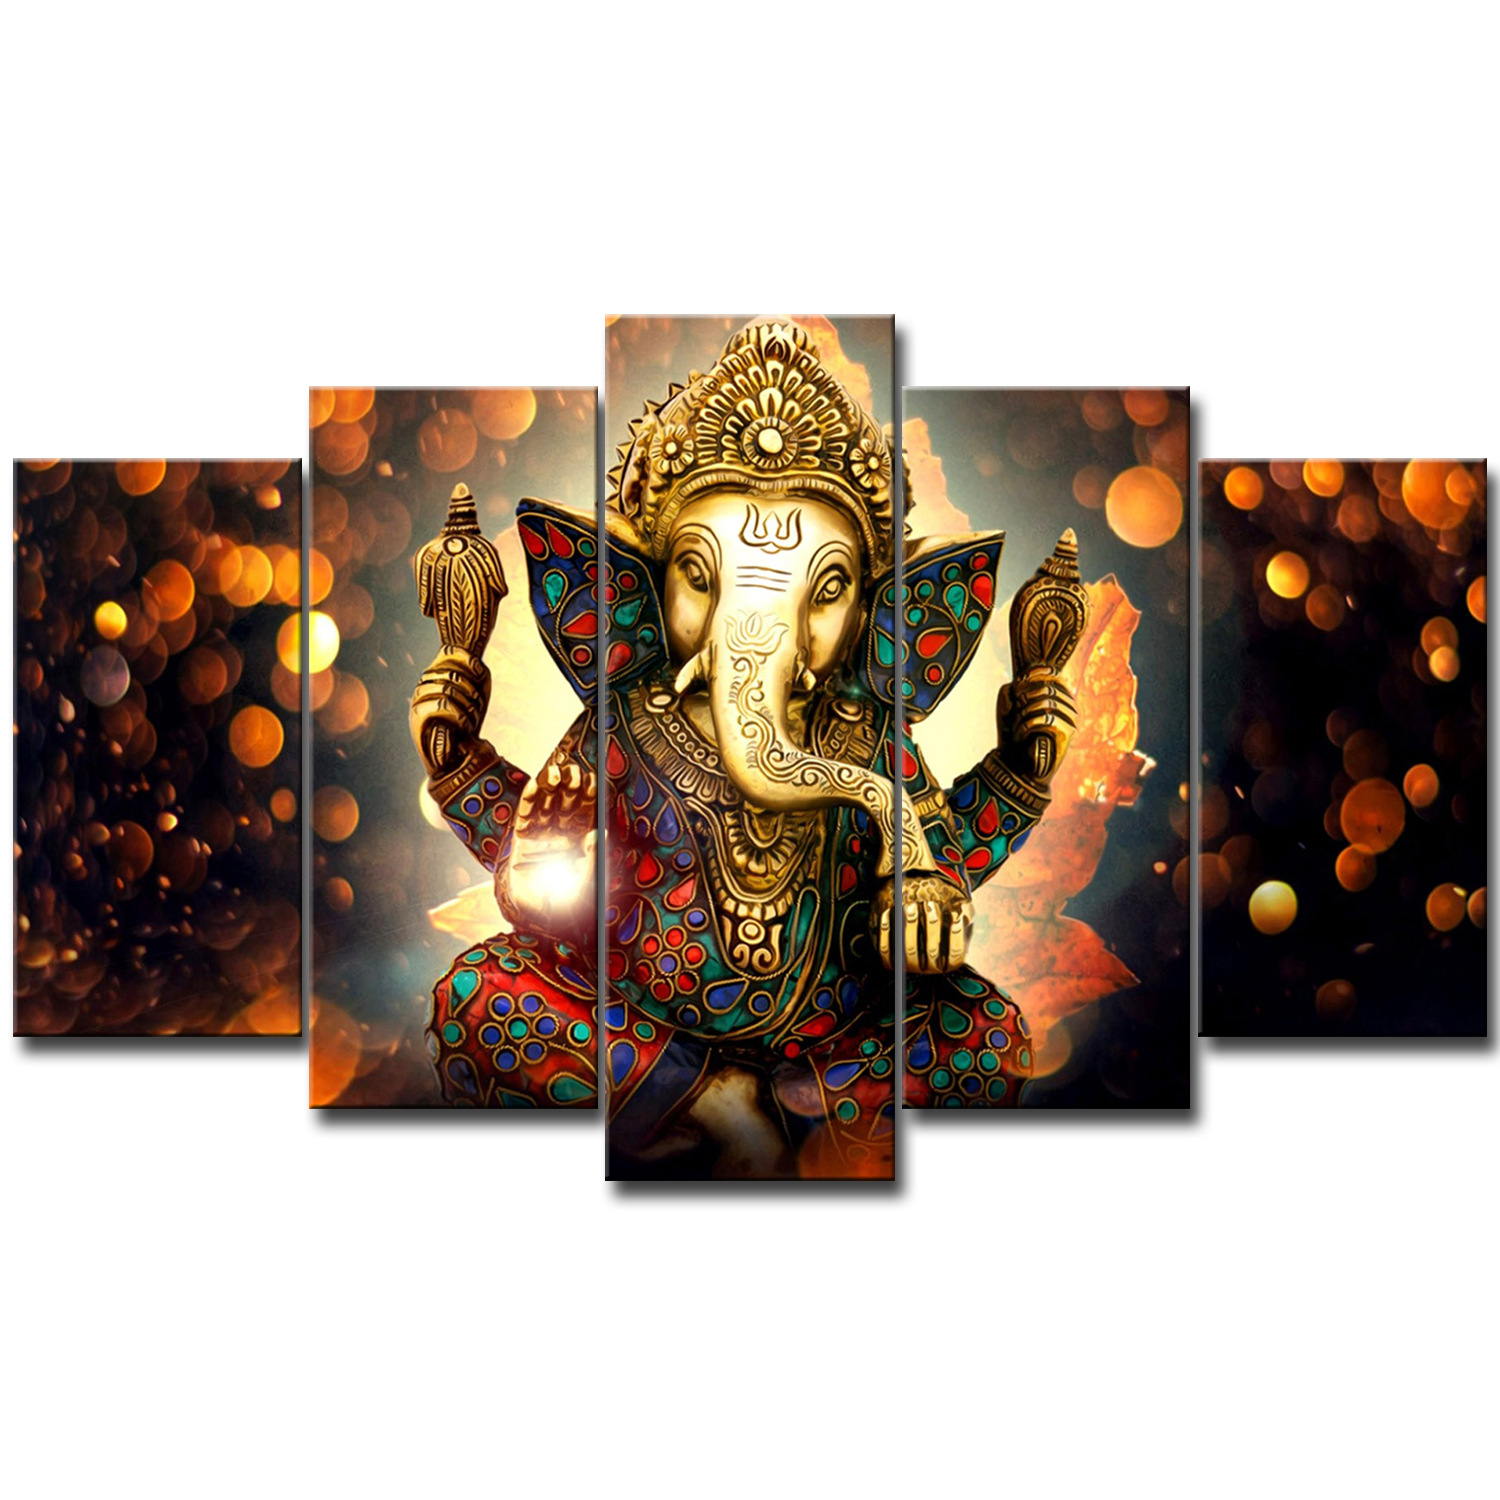 High Quality Wholesale Custom Made Ganesha The Indian Elephant Buddha 3D Canvas Painting Print For Home Decor